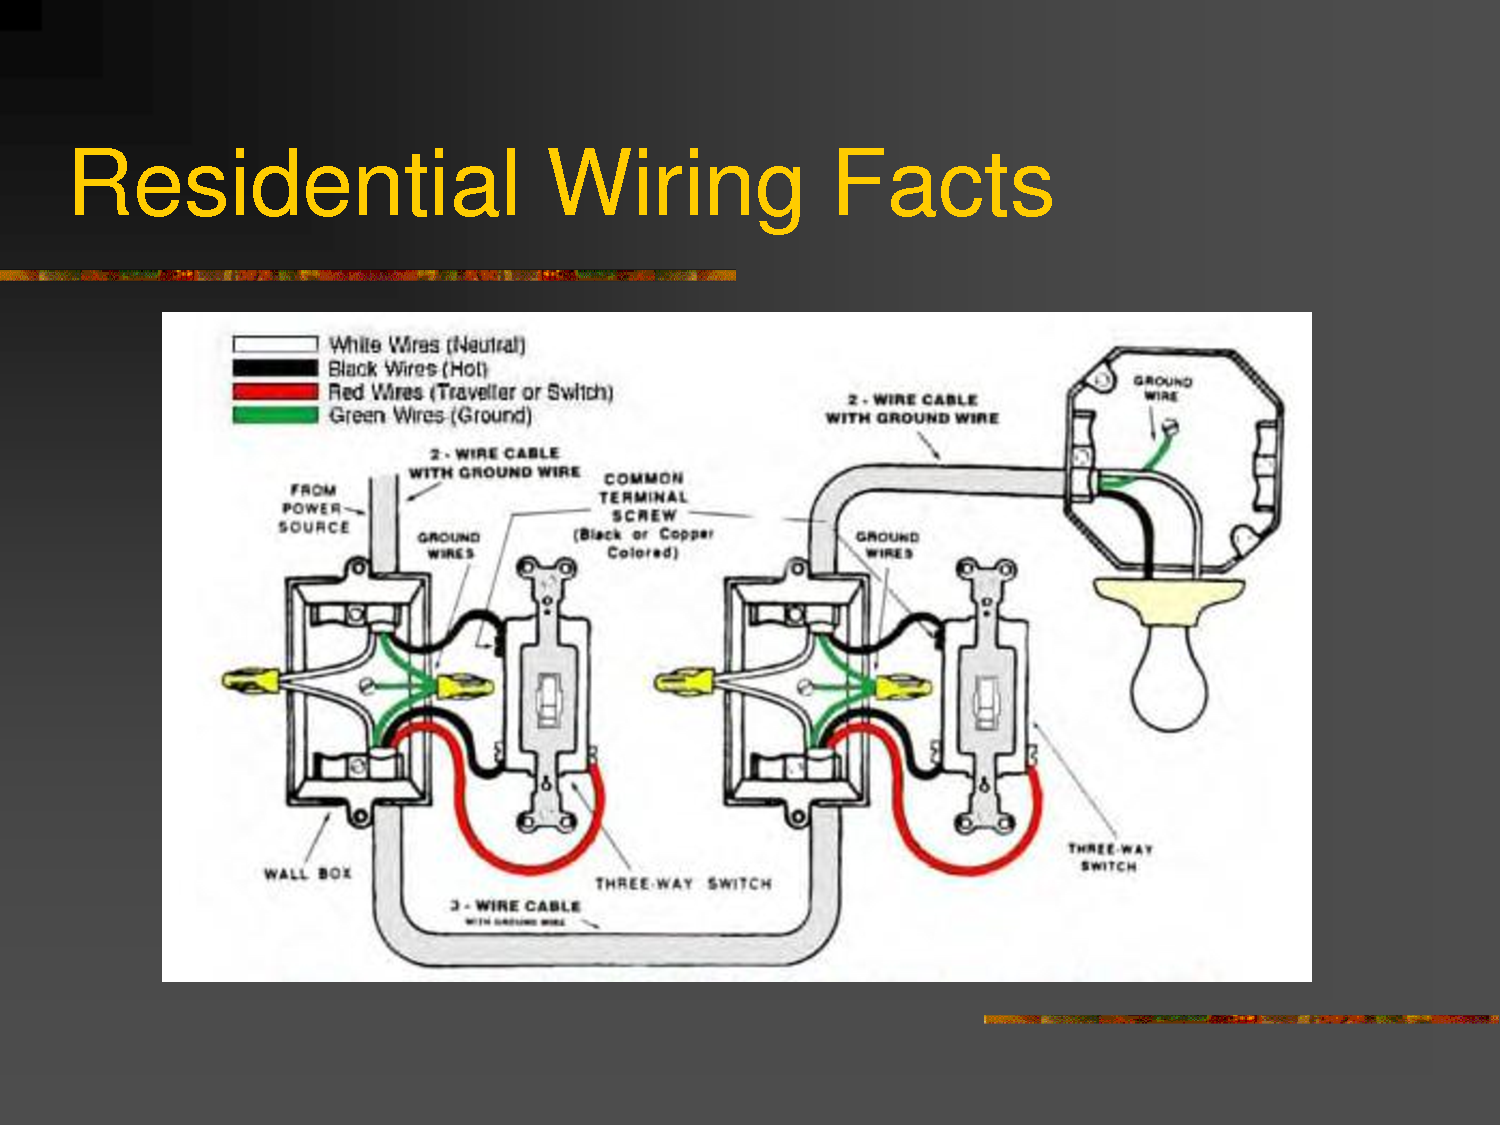 Residential Wiring Is Parallel Wiring For Train Layout Buildings And